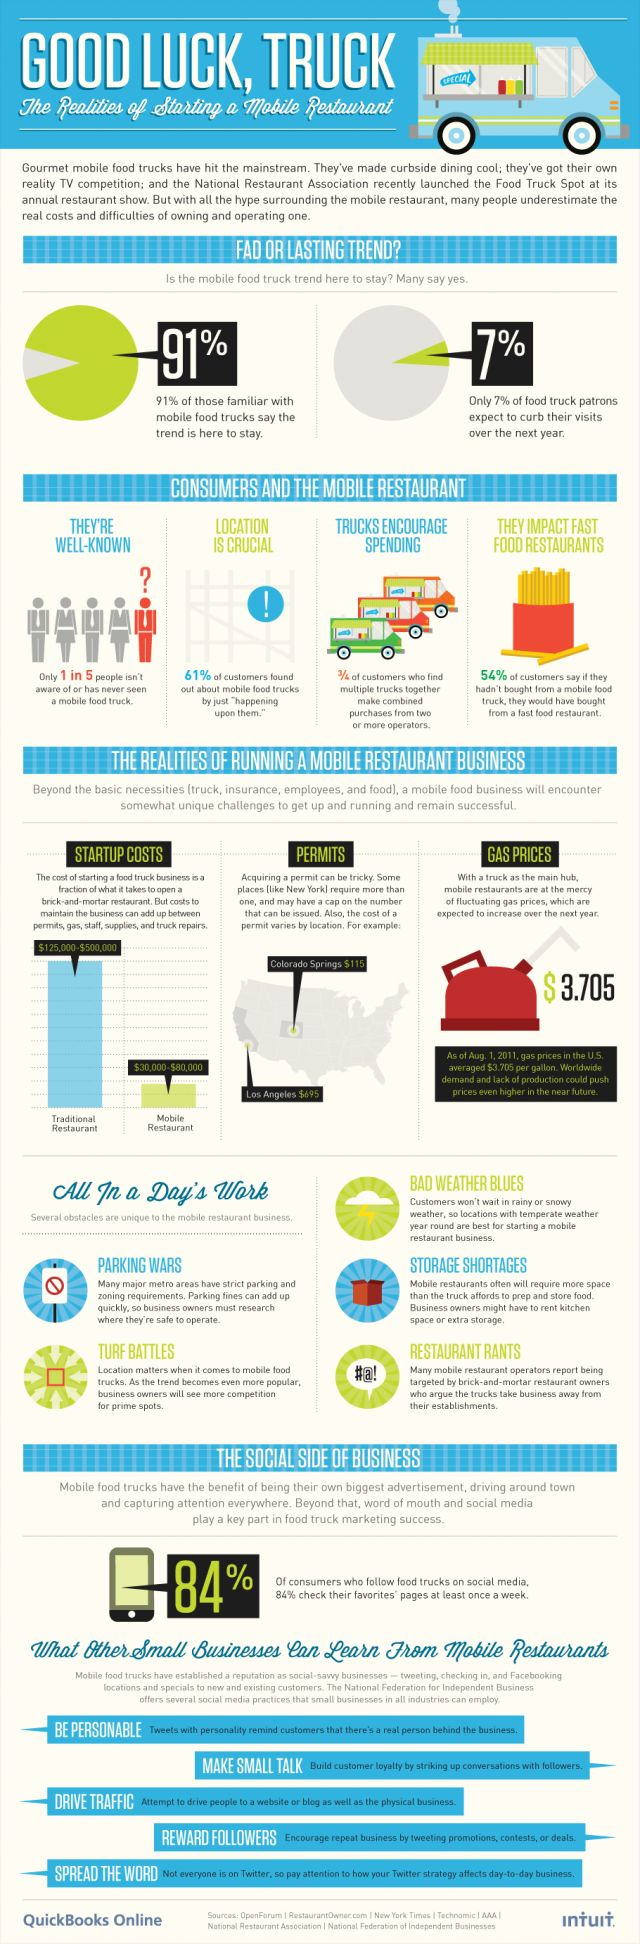 Food Truck Infographic. Restaurants battle this but seems like fast food is where the business comes from.